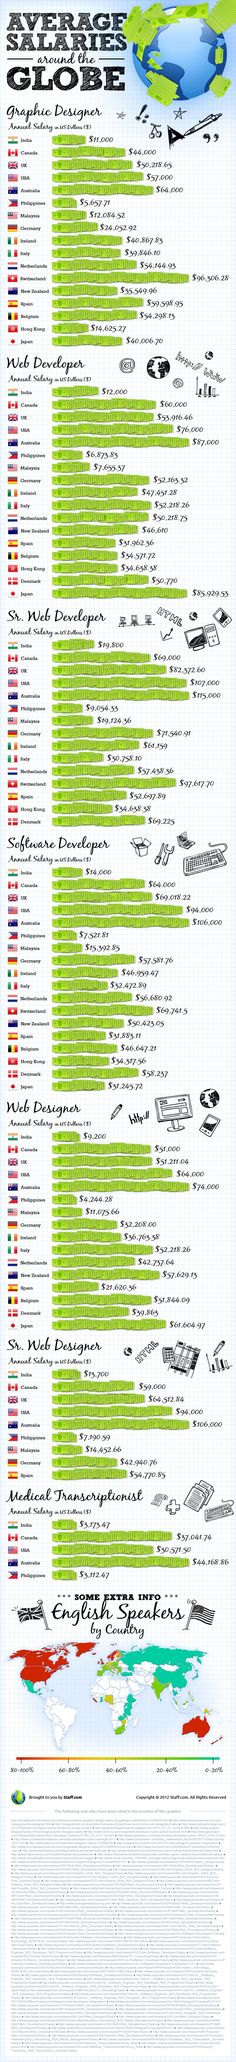 Where to get paid the most for web and software development.